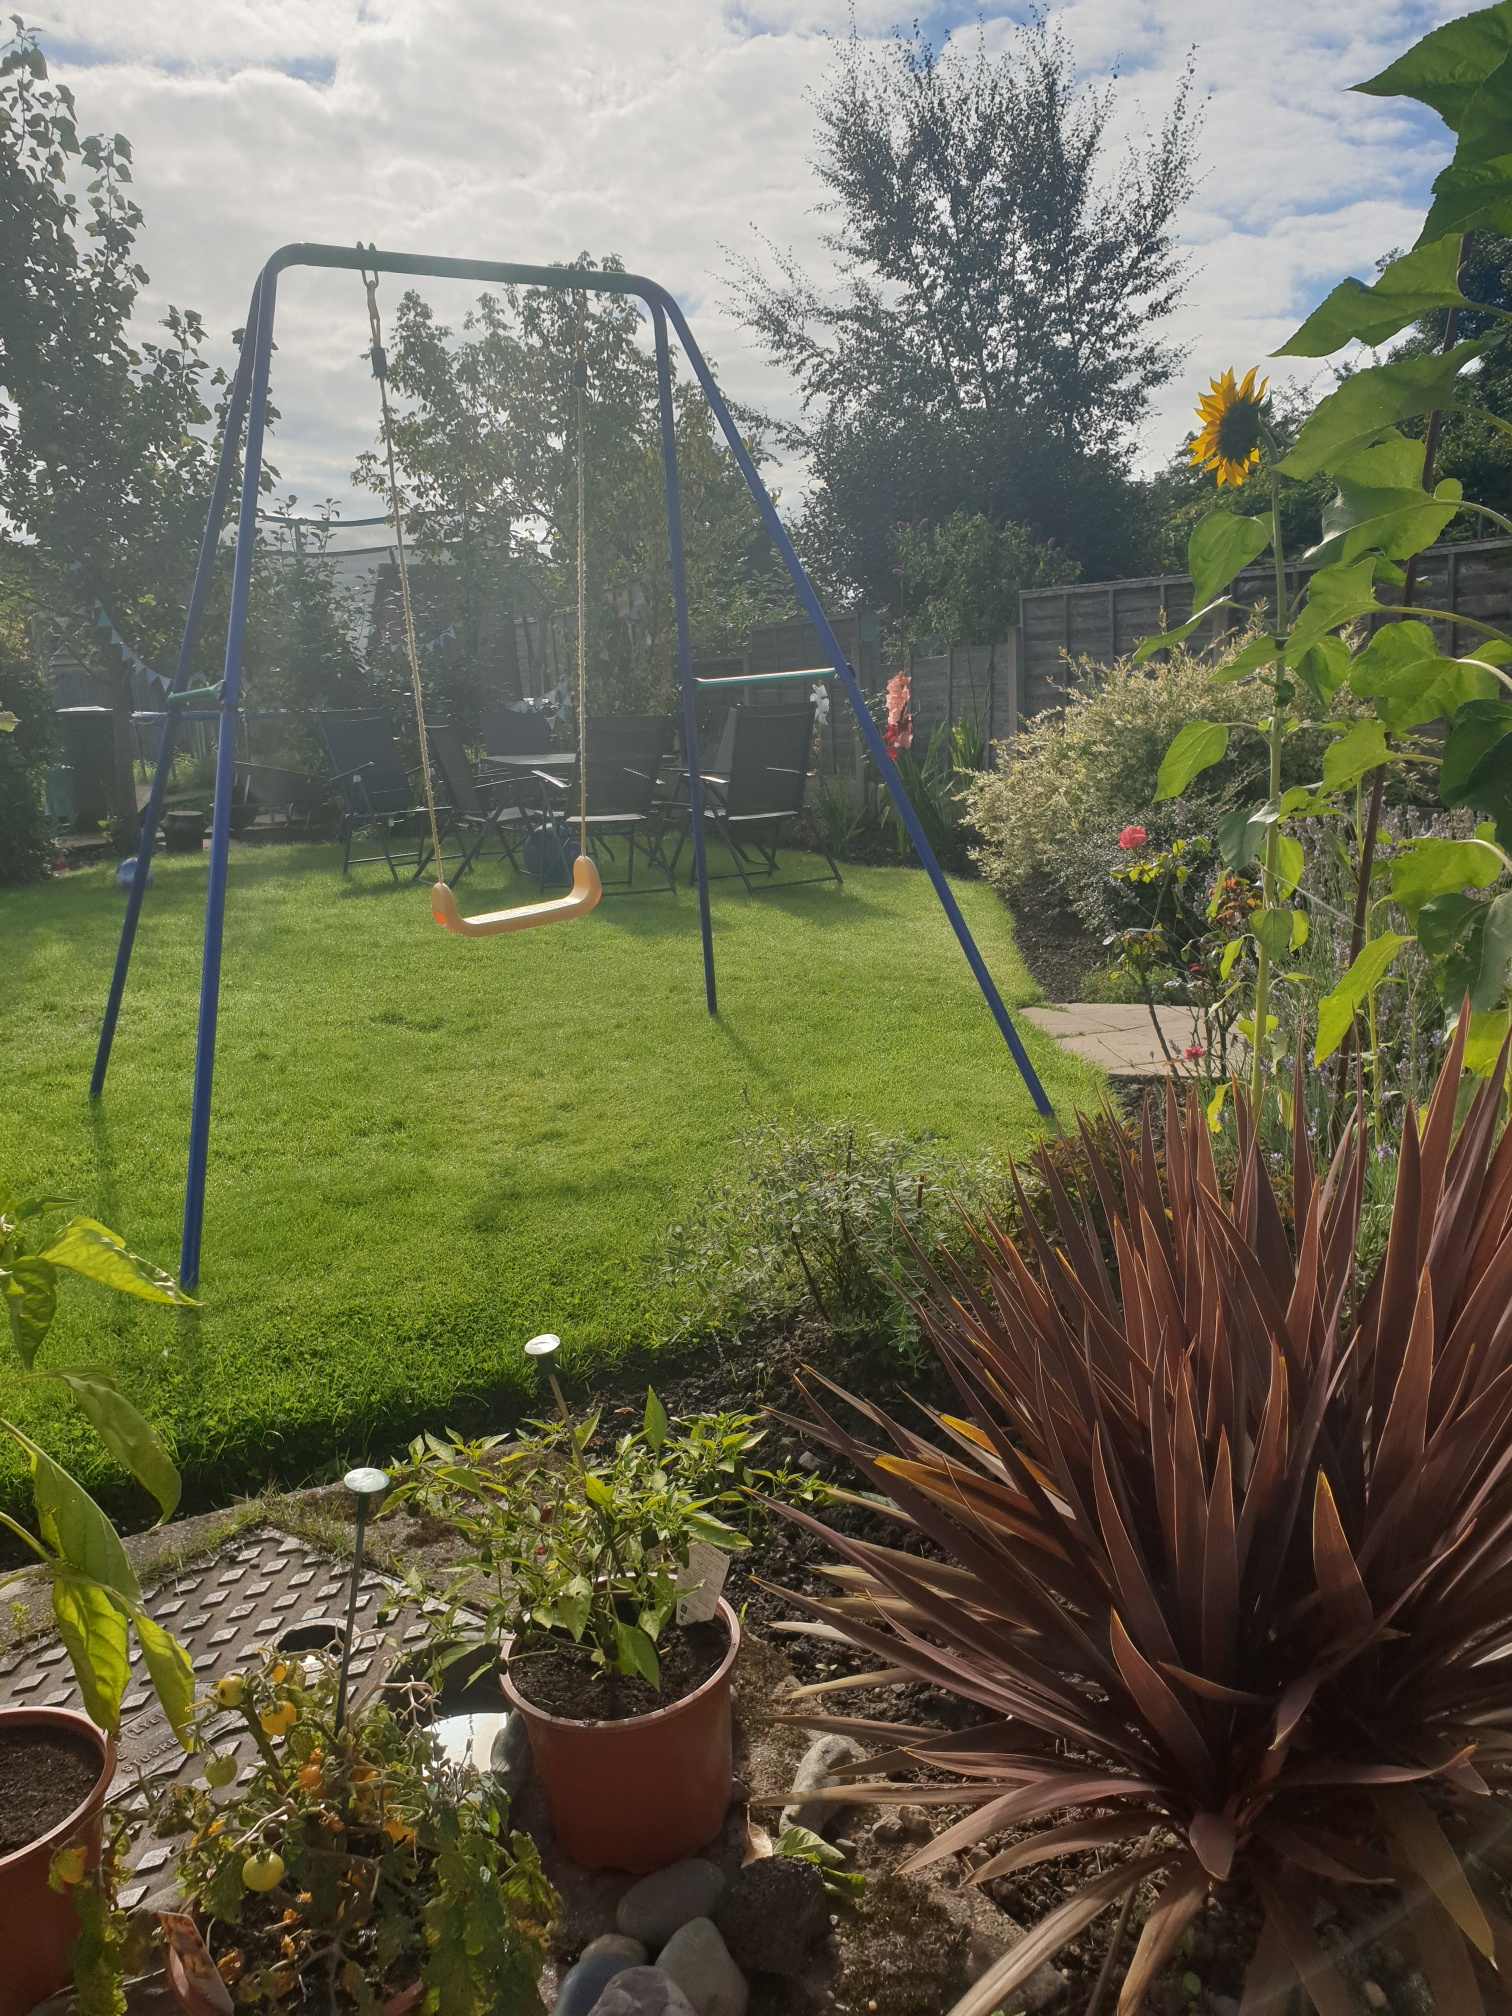 A photograph of a large back garden, with assorted potted plants in the foreground, and a child's swing on a lawn just beyond them. There is some garden furniture on the lawn in the background.